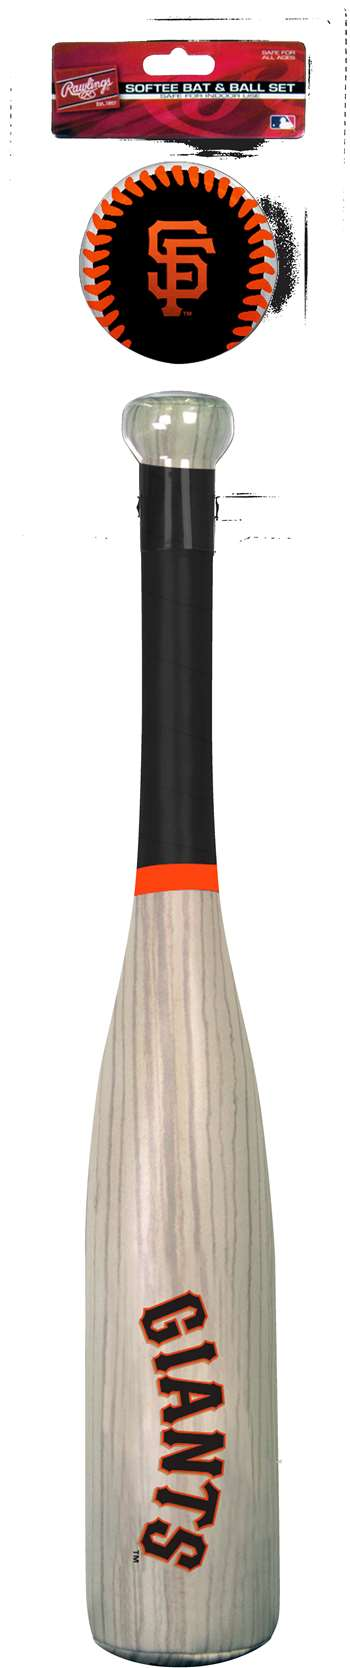 MLB San Francisco Giants Grand Slam Softee Baseball Bat and Ball Set (Wood Grain)